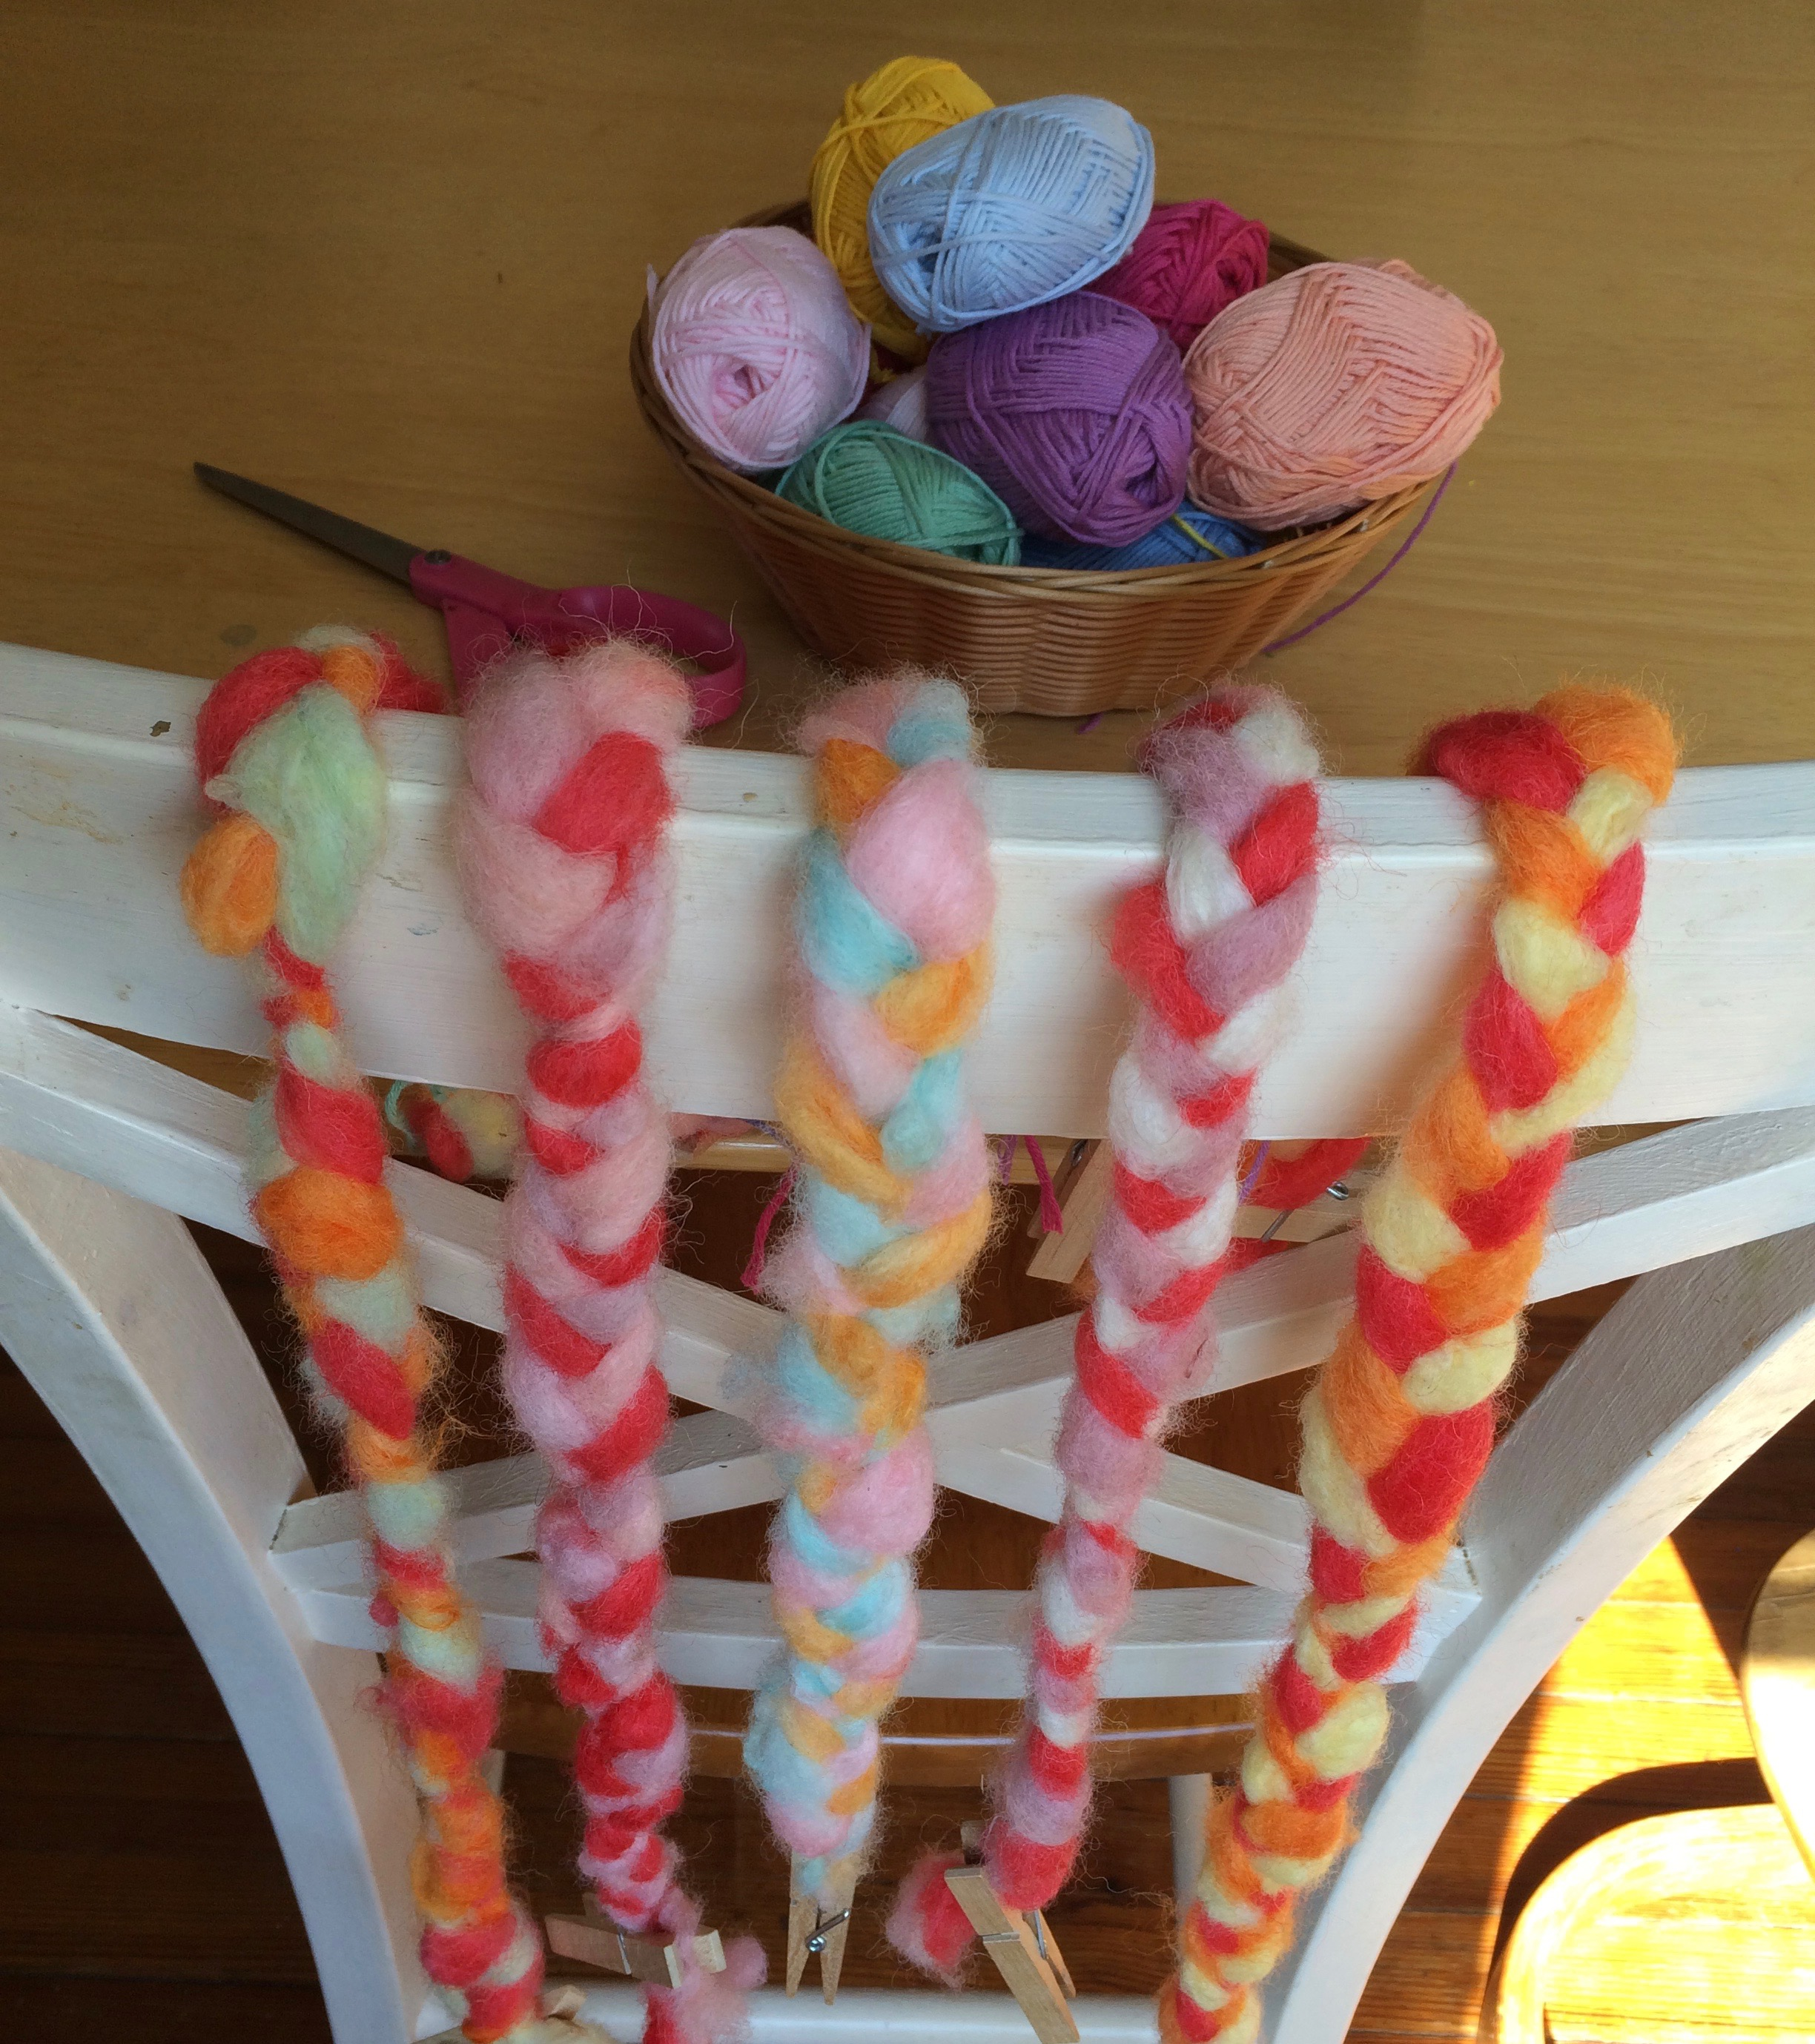 Braided fleece that has been washed, picked, carded, and dyed all by hand